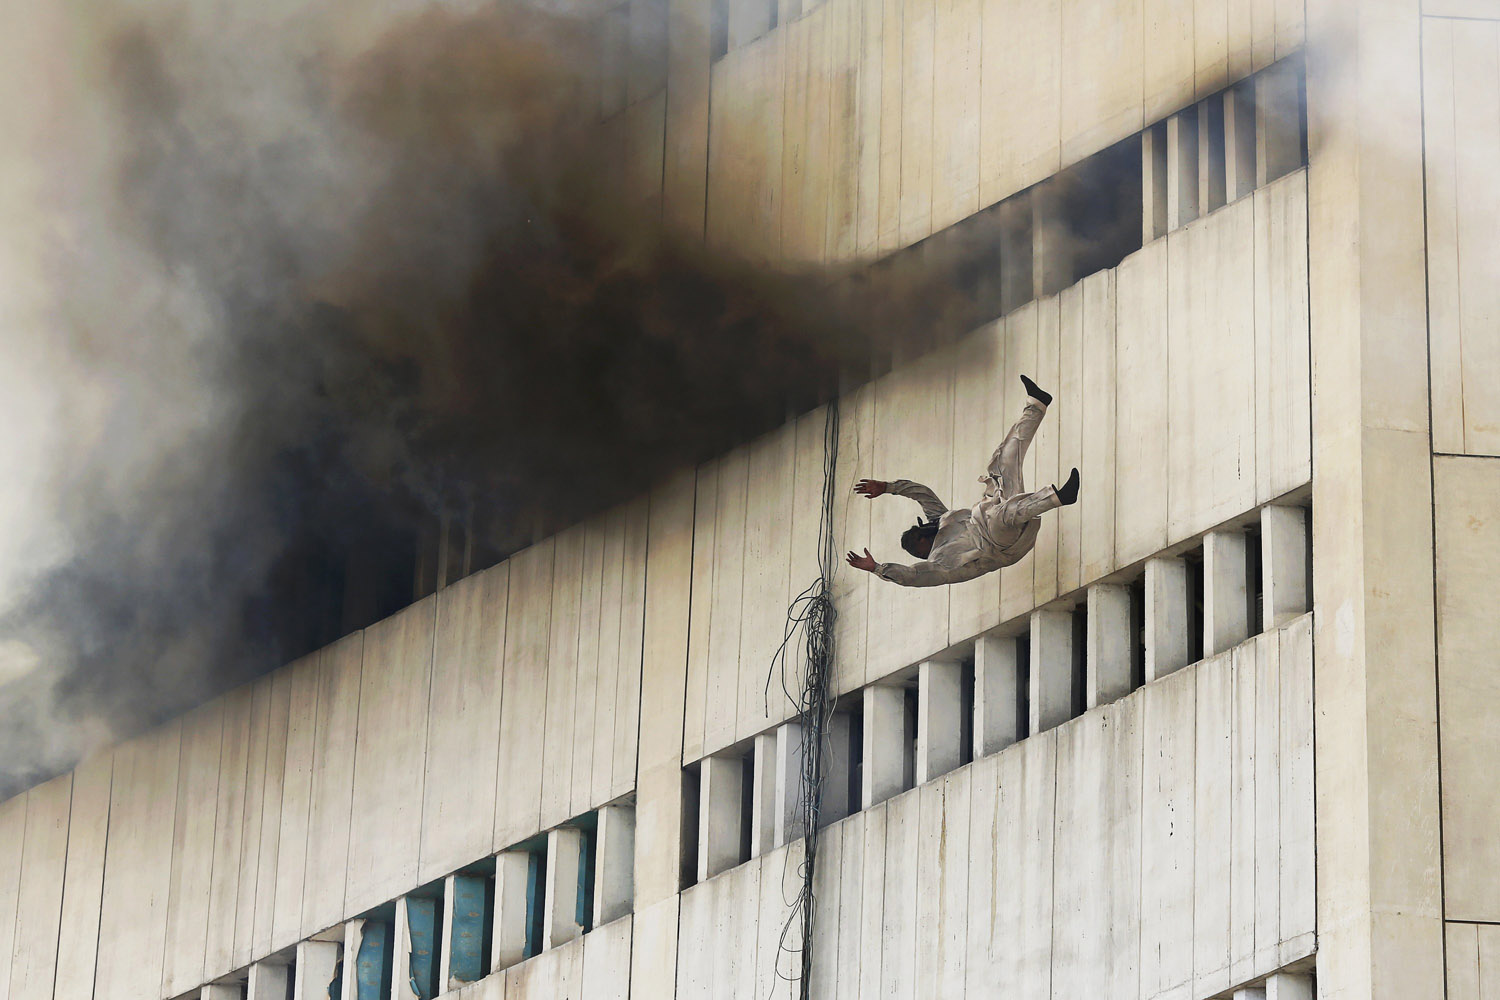 May 9, 2013. A man falls from a high floor of a burning building in central Lahore, Pakistan.